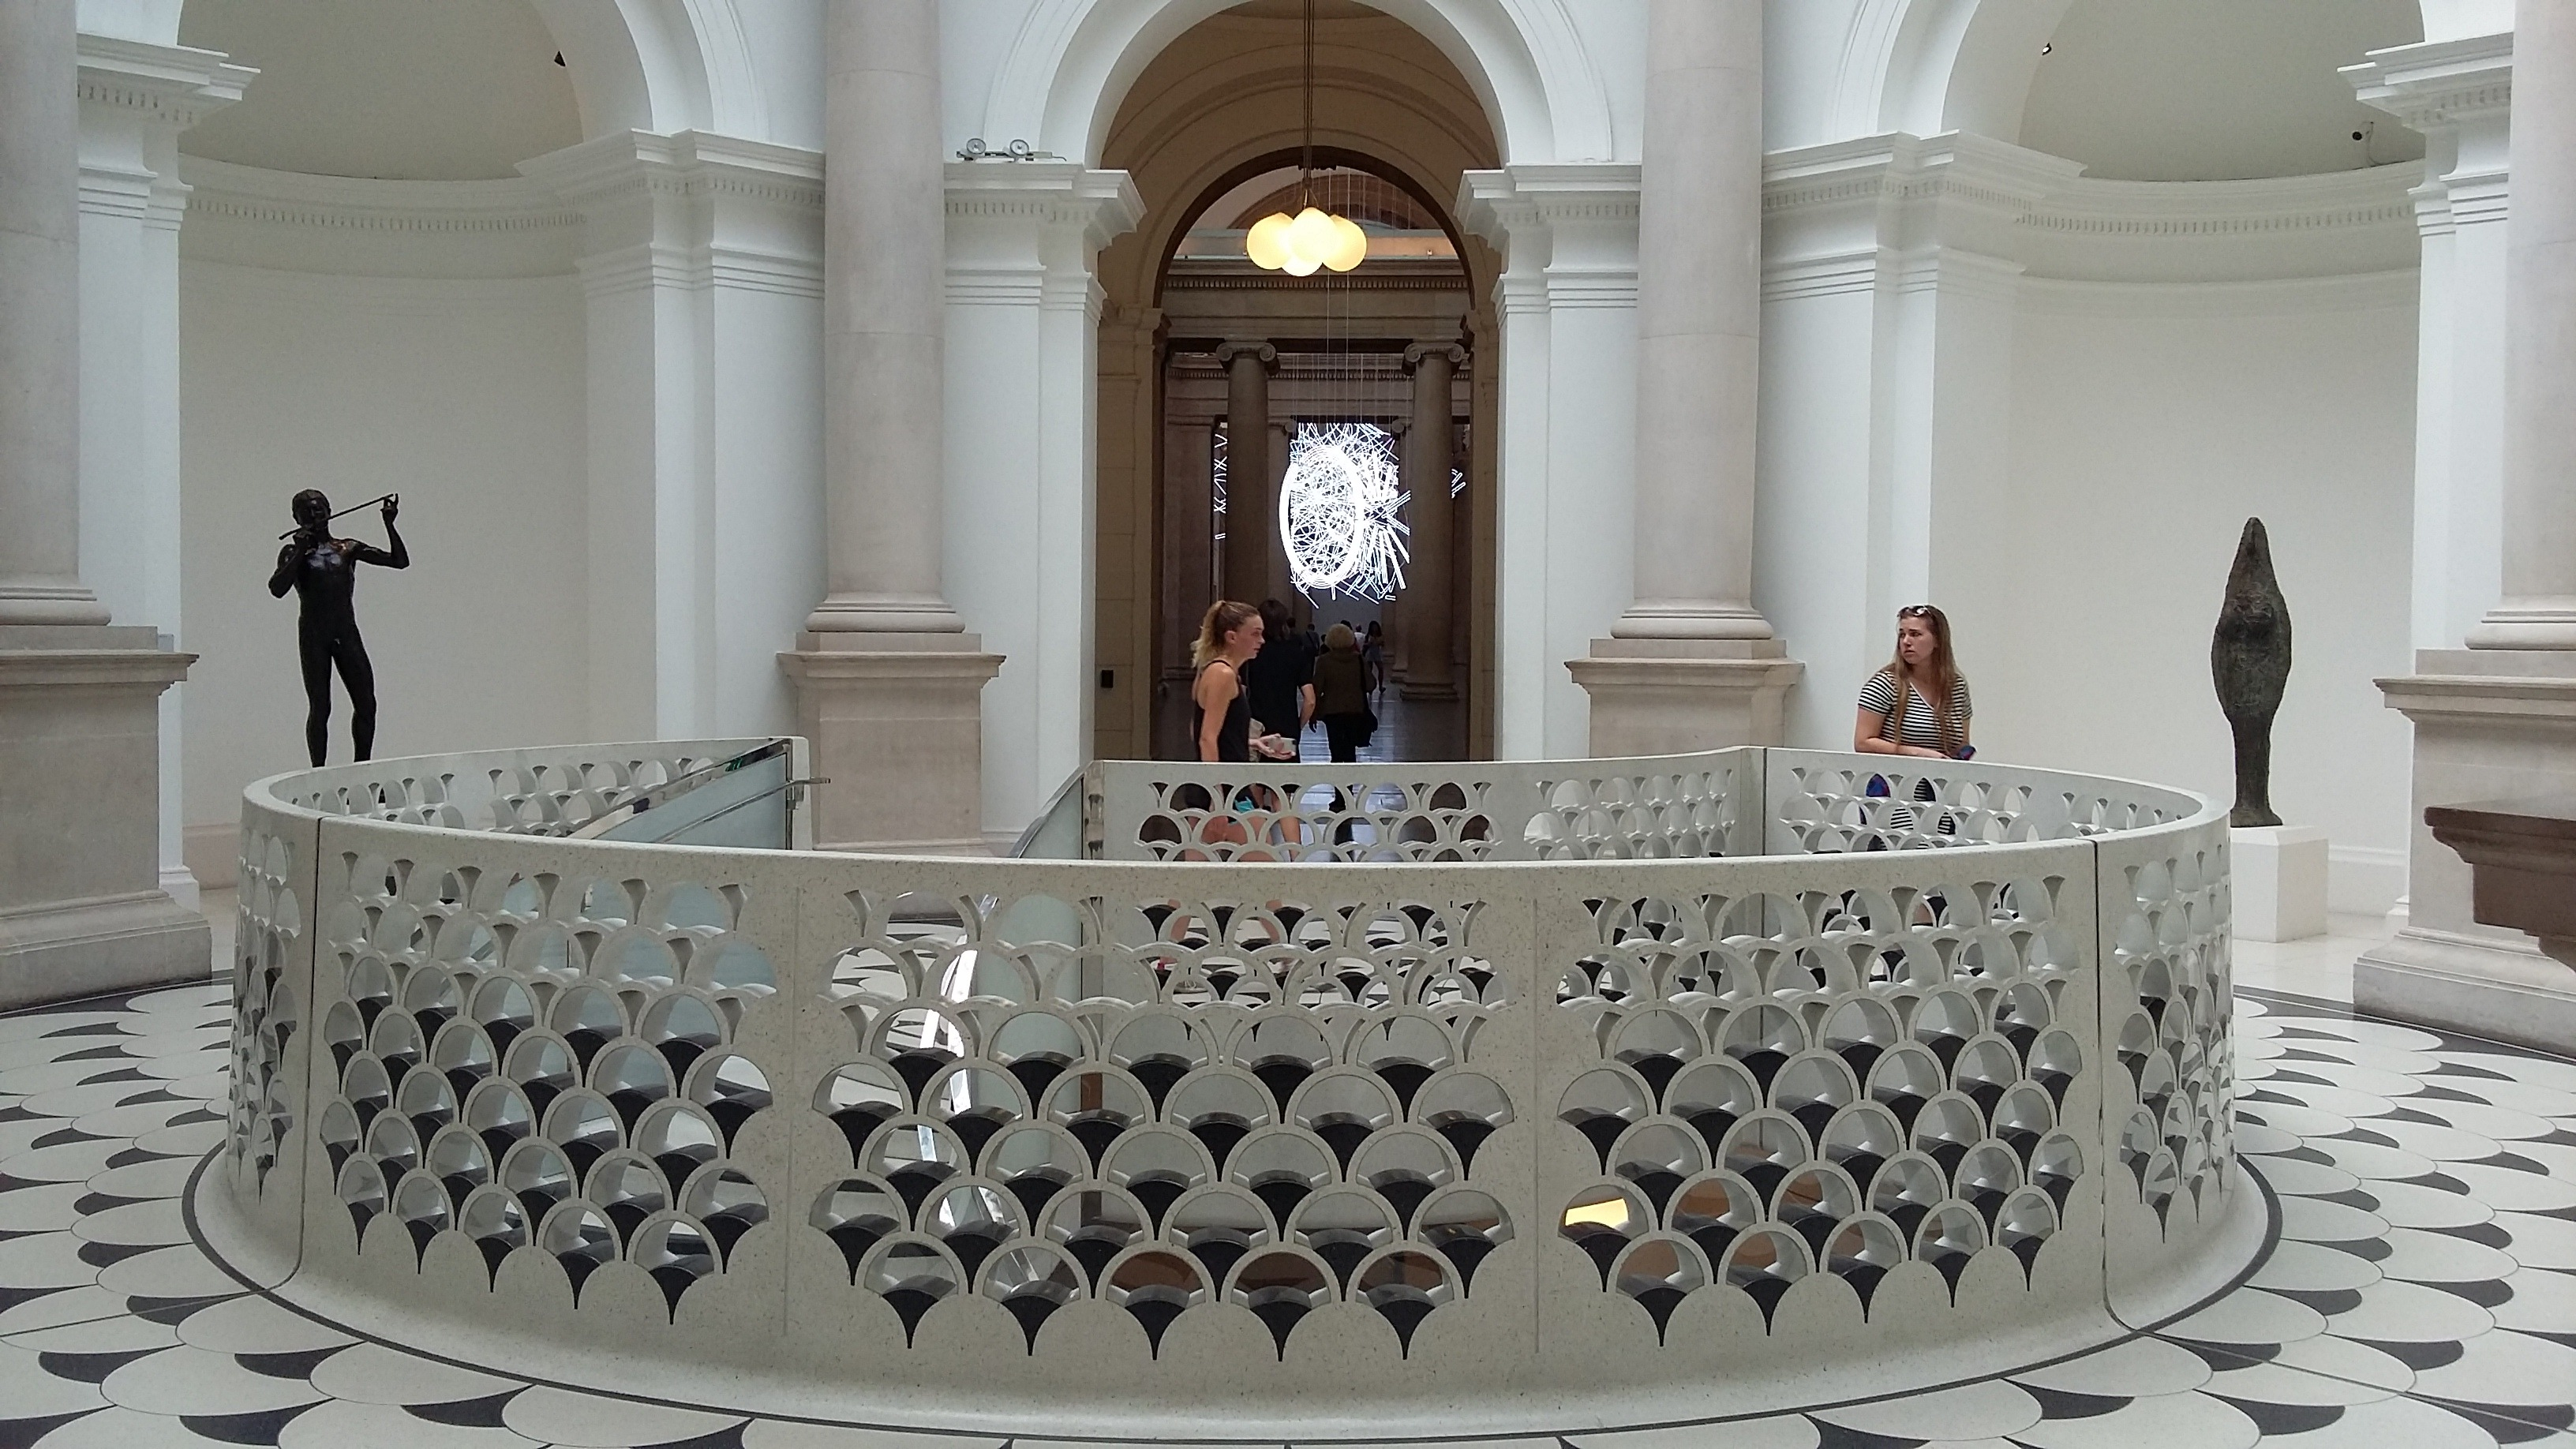 Inside Tate Britain